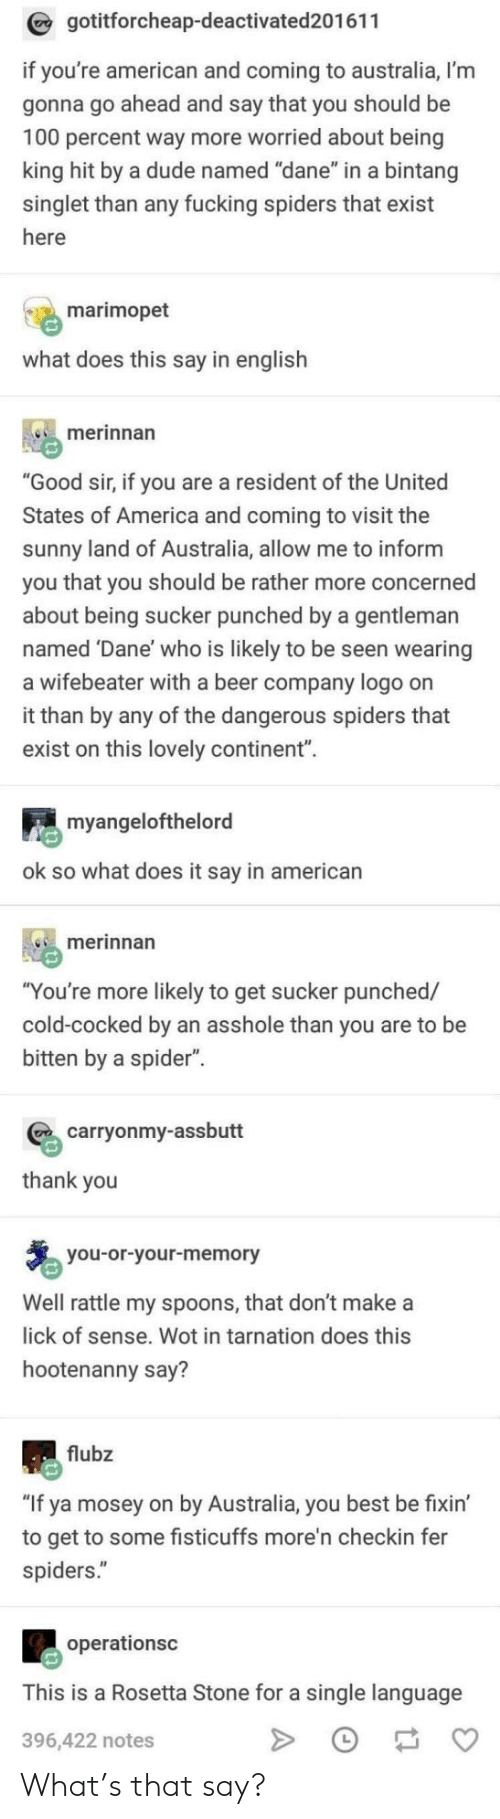 """America, Anaconda, and Beer: gotitforcheap-deactivated201611  if you're american and coming to australia, I'm  gonna go ahead and say that you should be  100 percent way more worried about being  king hit by a dude named """"dane"""" in a bintang  singlet than any fucking spiders that exist  here  marimopet  what does this say in english  merinnan  """"Good sir, if you are a resident of the United  States of America and coming to visit the  sunny land of Australia, allow me to inform  you that you should be rather more concerned  about being sucker punched by a gentleman  named Dane' who is likely to be seen wearing  a wifebeater with a beer company logo on  it than by any of the dangerous spiders that  exist on this lovely continent"""".  myangelofthelord  ok so what does it say in american  merinnan  """"You're more likely to get sucker punched/  cold-cocked by an asshole than you are to be  bitten by a spider"""".  carryonmy-assbutt  thank you  you-or-your-memory  Well rattle my spoons, that don't makea  lick of sense. Wot in tarnation does this  hootenanny say?  flubz  """"If ya mosey on by Australia, you best be fixin'  to get to some fisticuffs more'n checkin fer  spiders.""""  operationsc  This is a Rosetta Stone for a single language  396,422 notes What's that say?"""